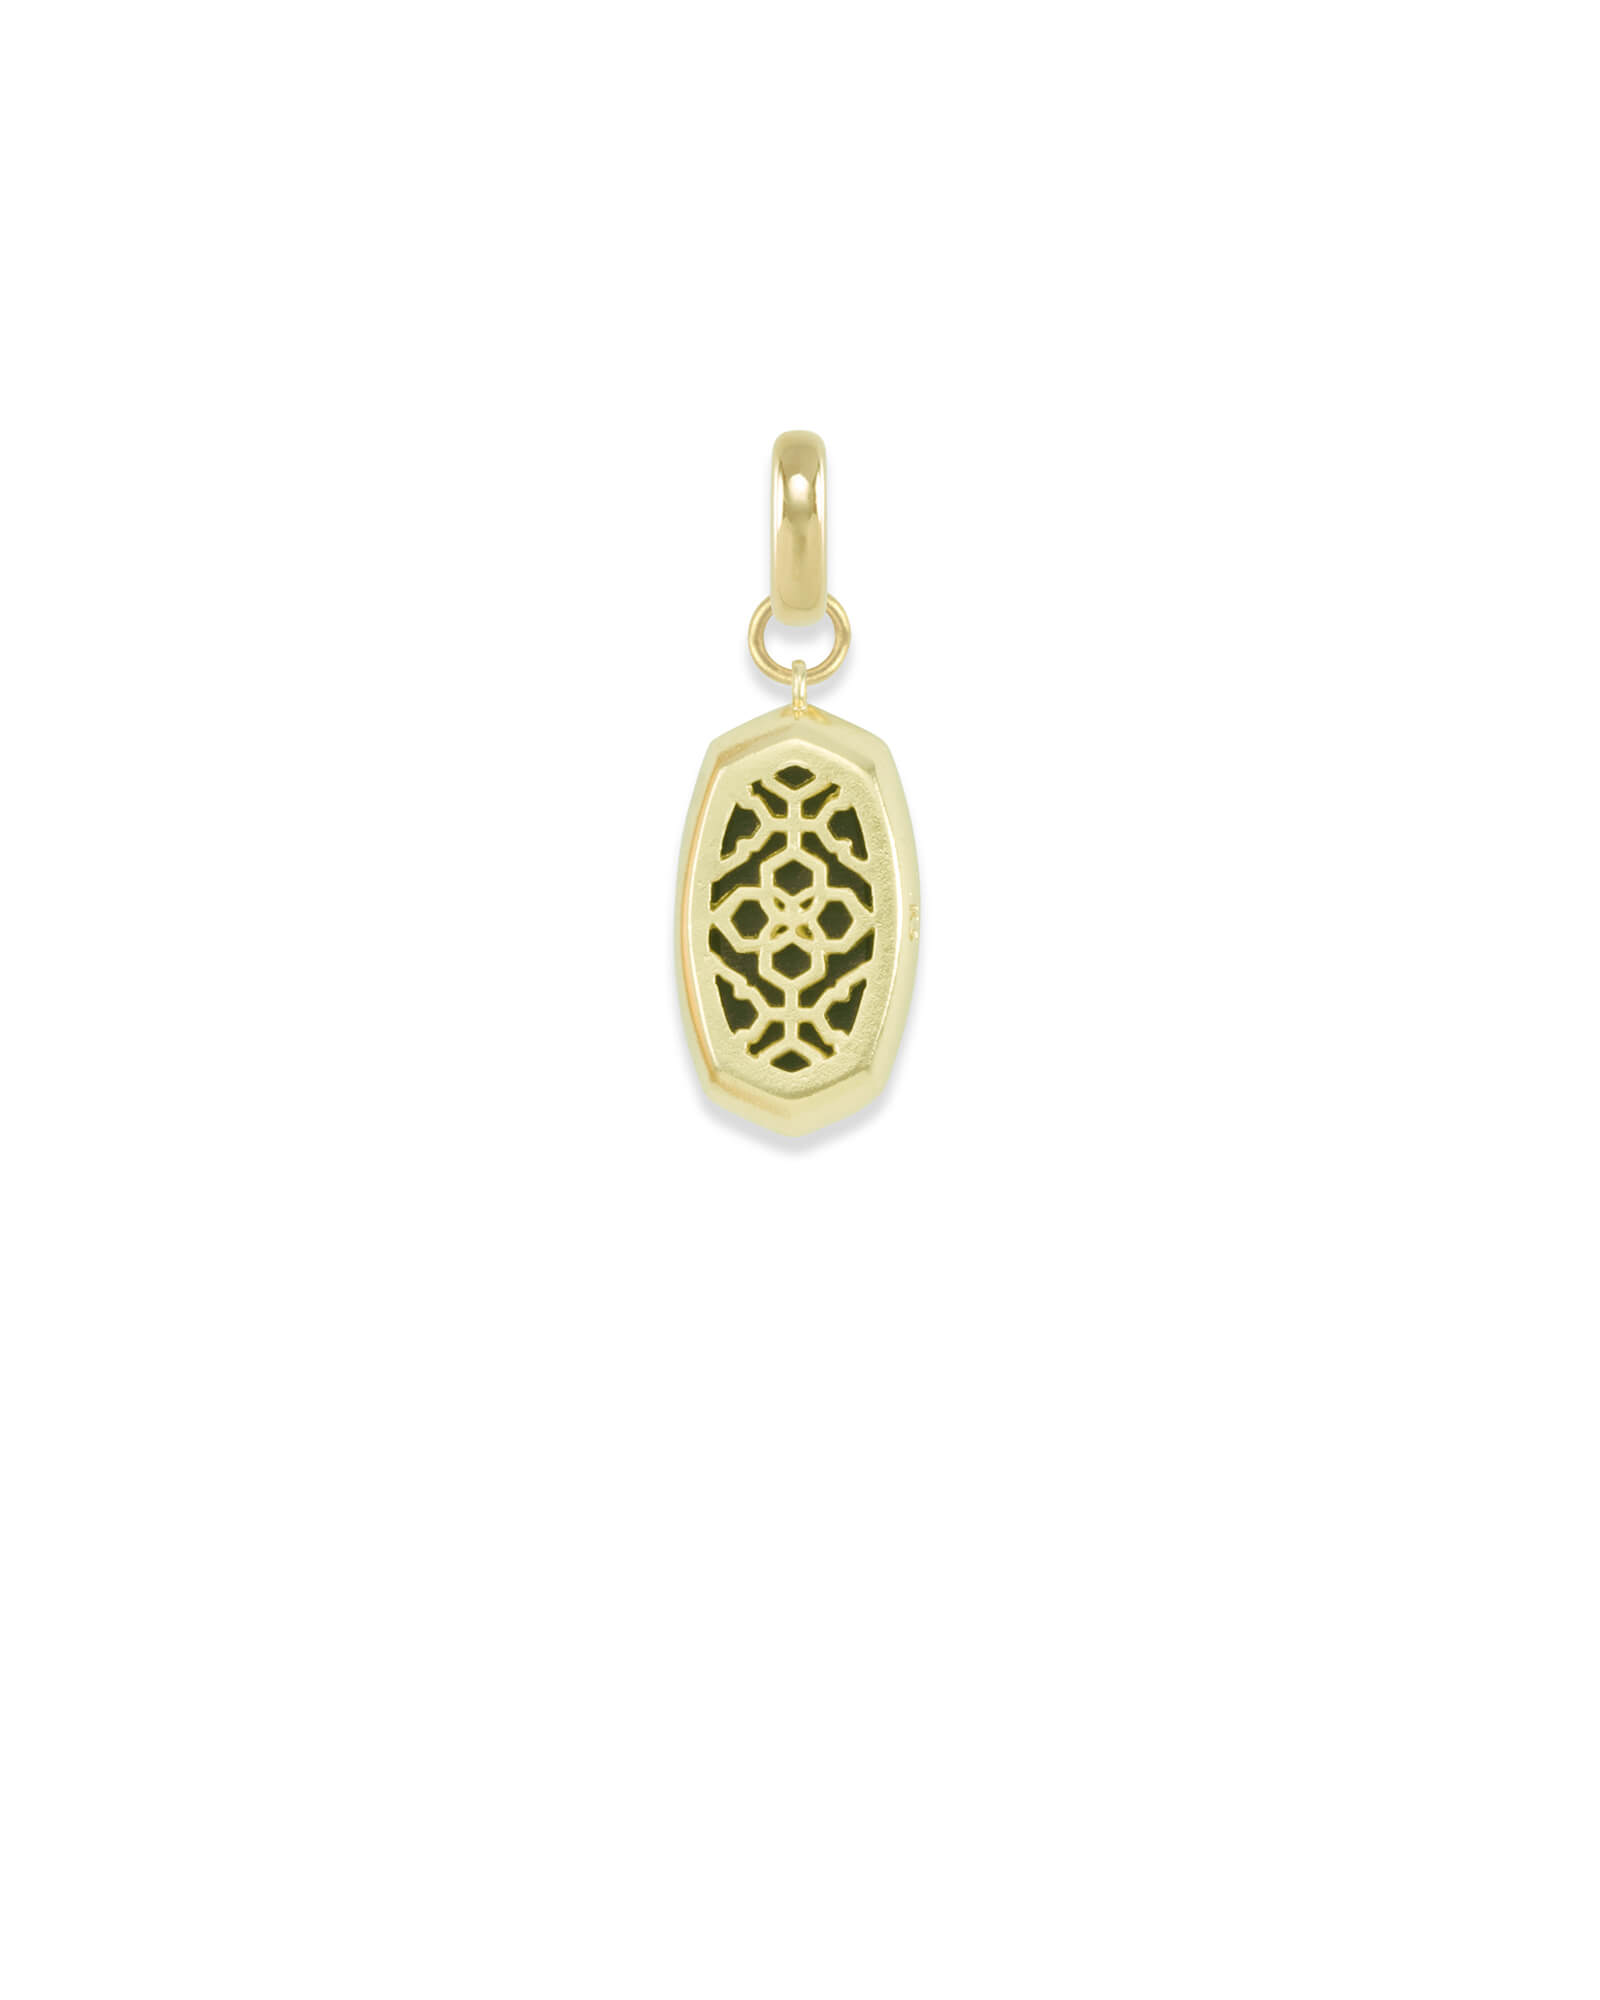 Mood Stone Charm in Gold